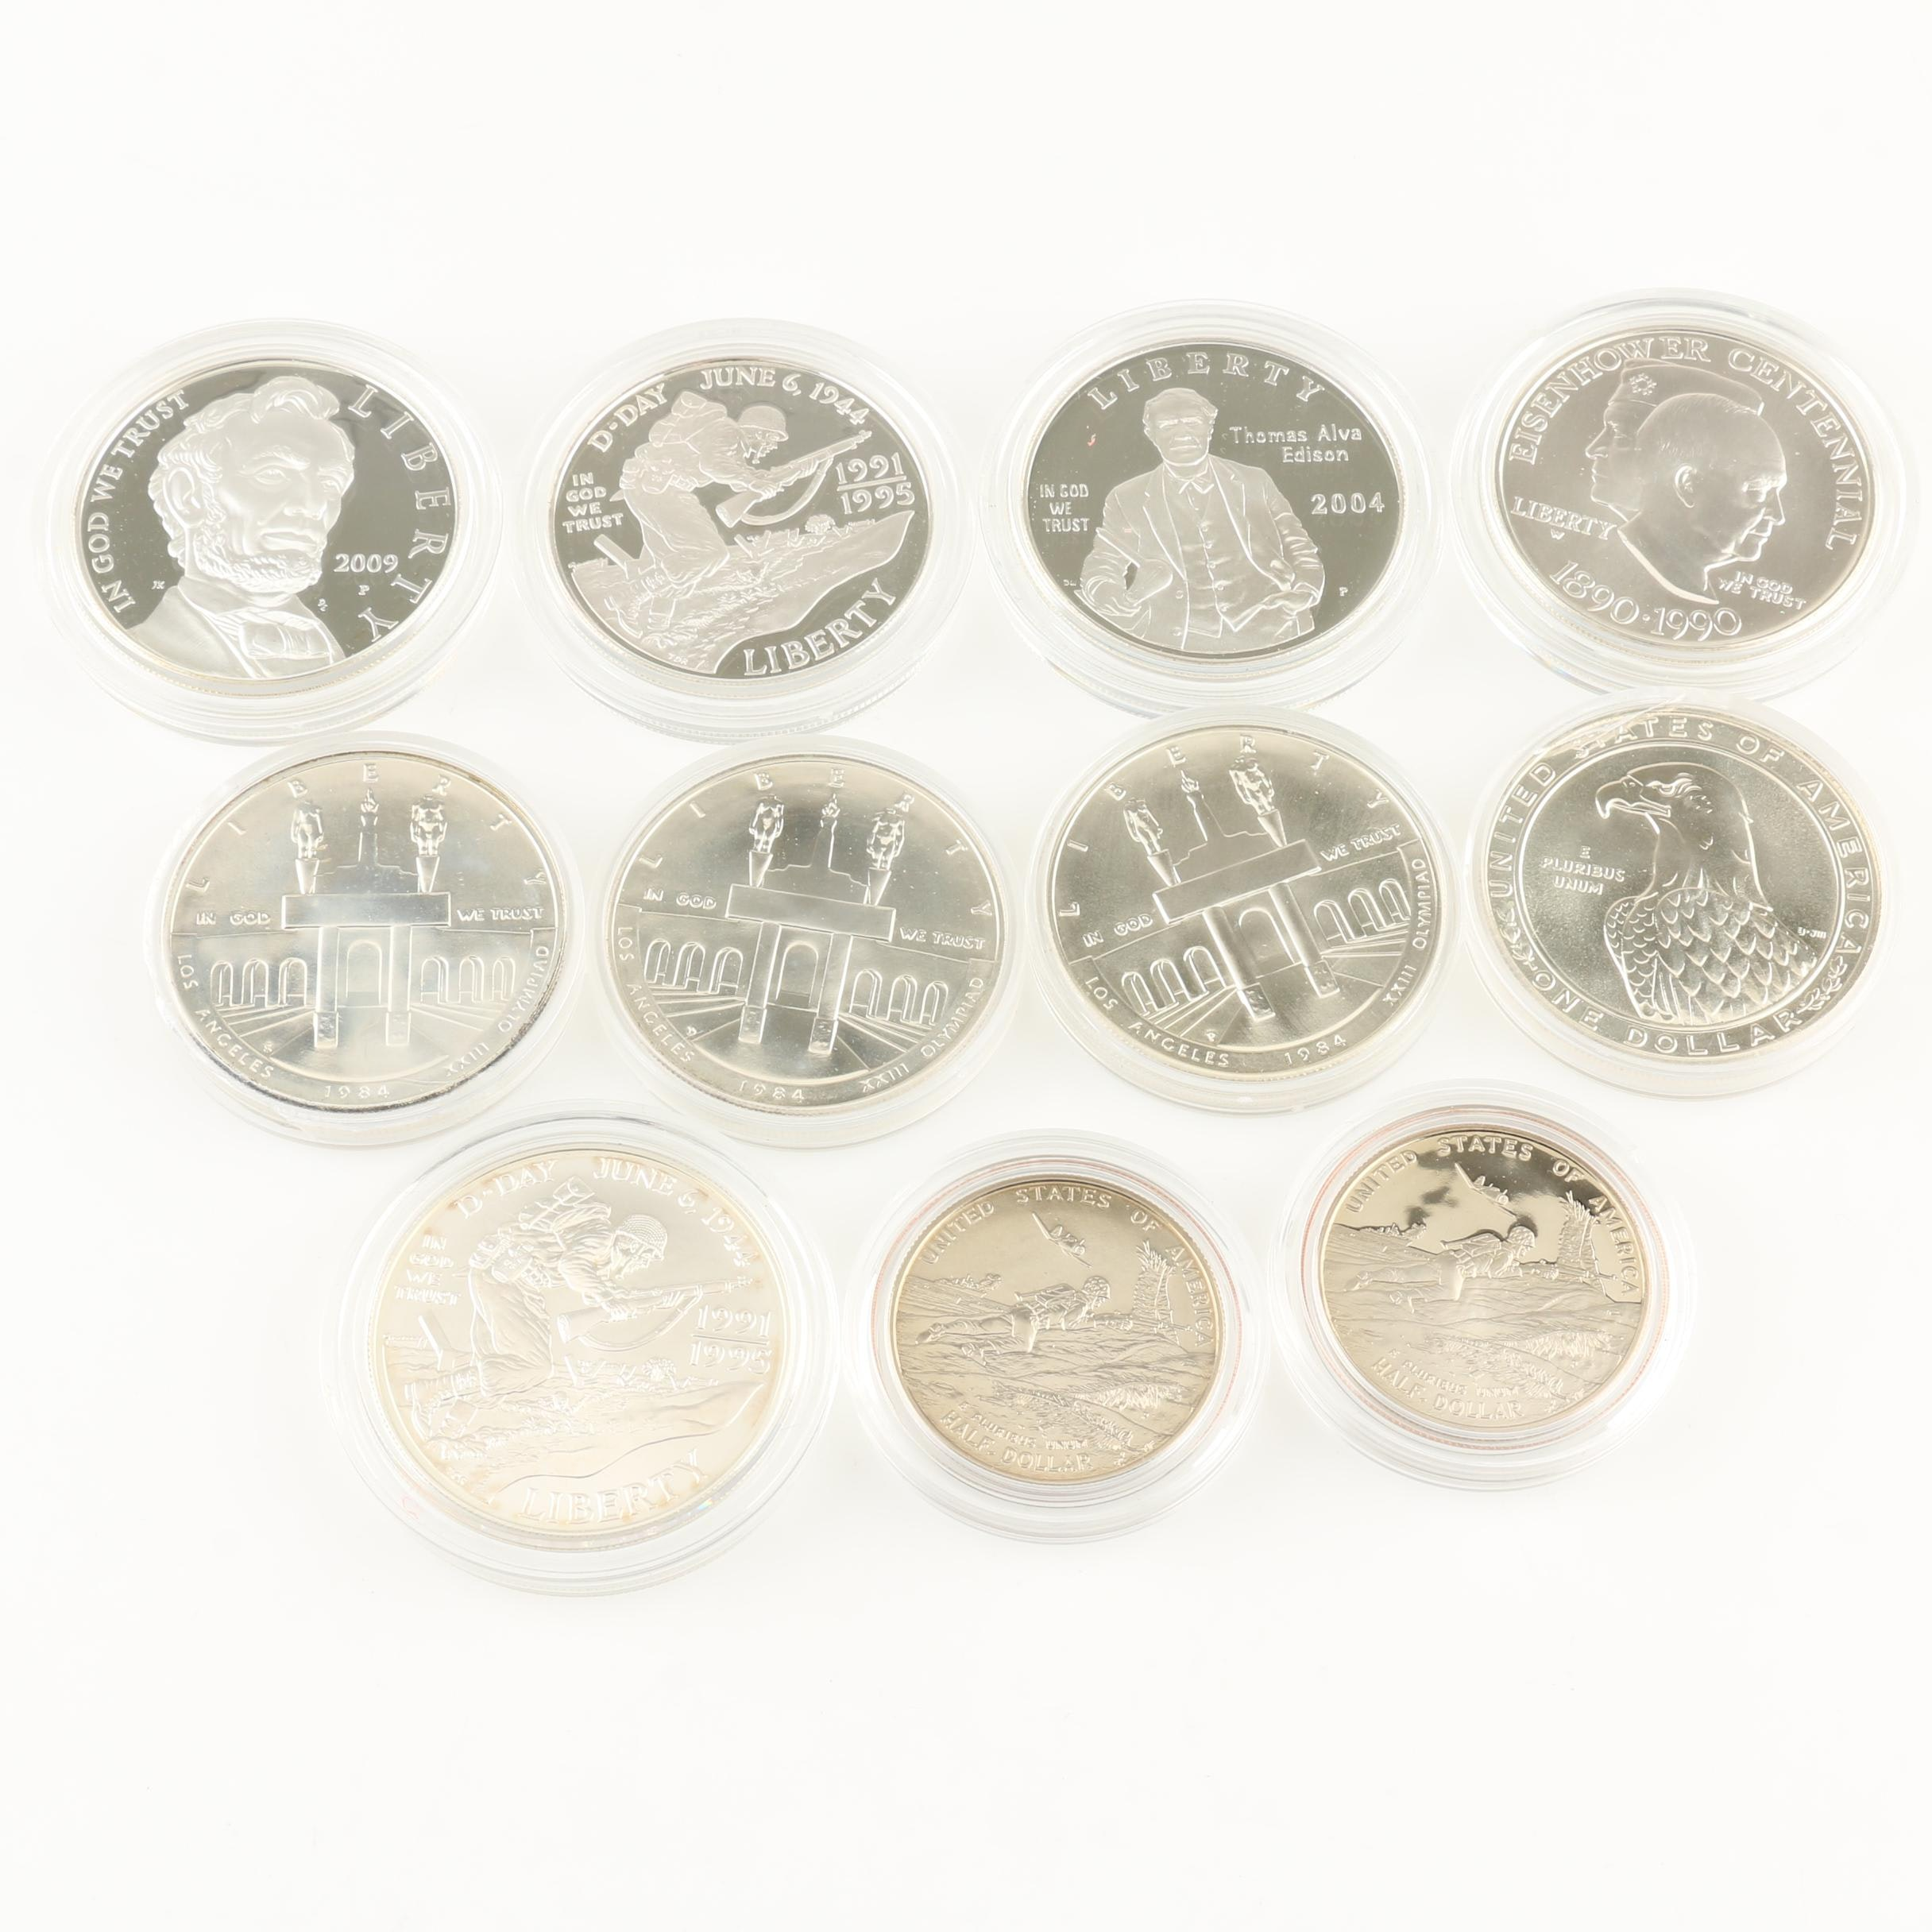 Seven U.S. Mint Modern Commemorative Silver Coin Sets